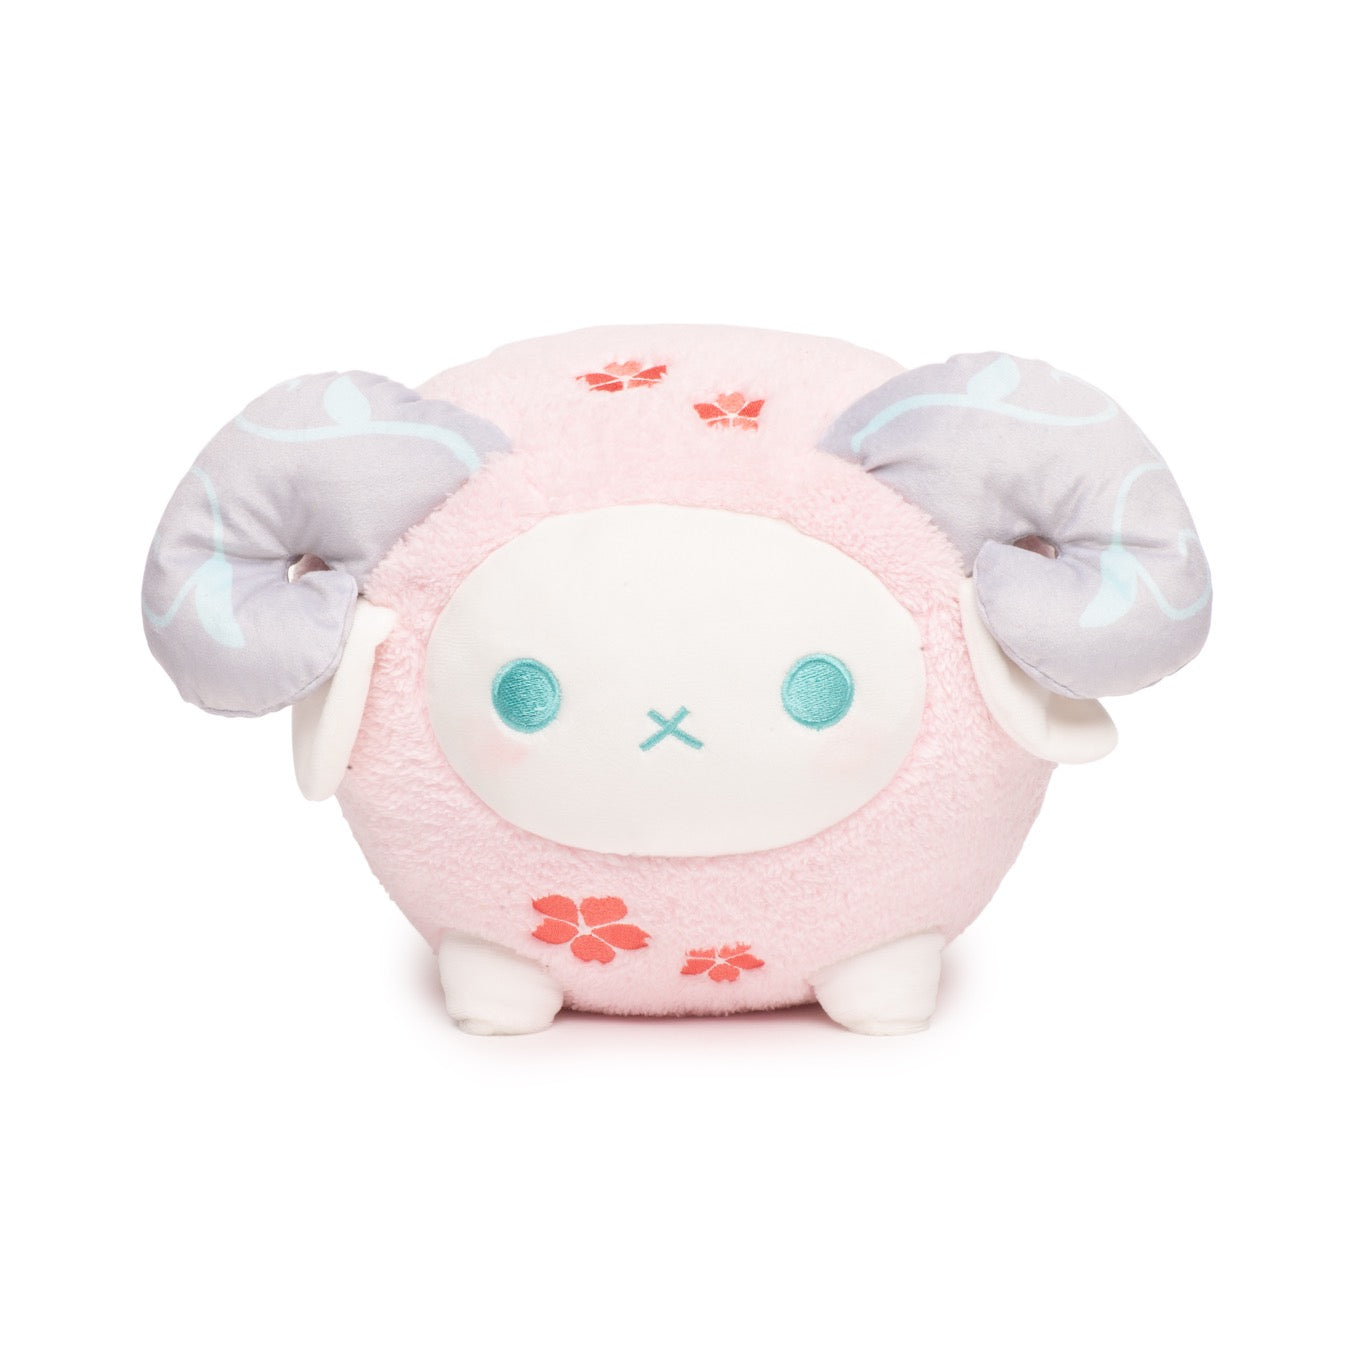 Giant Sakura Solram Plush